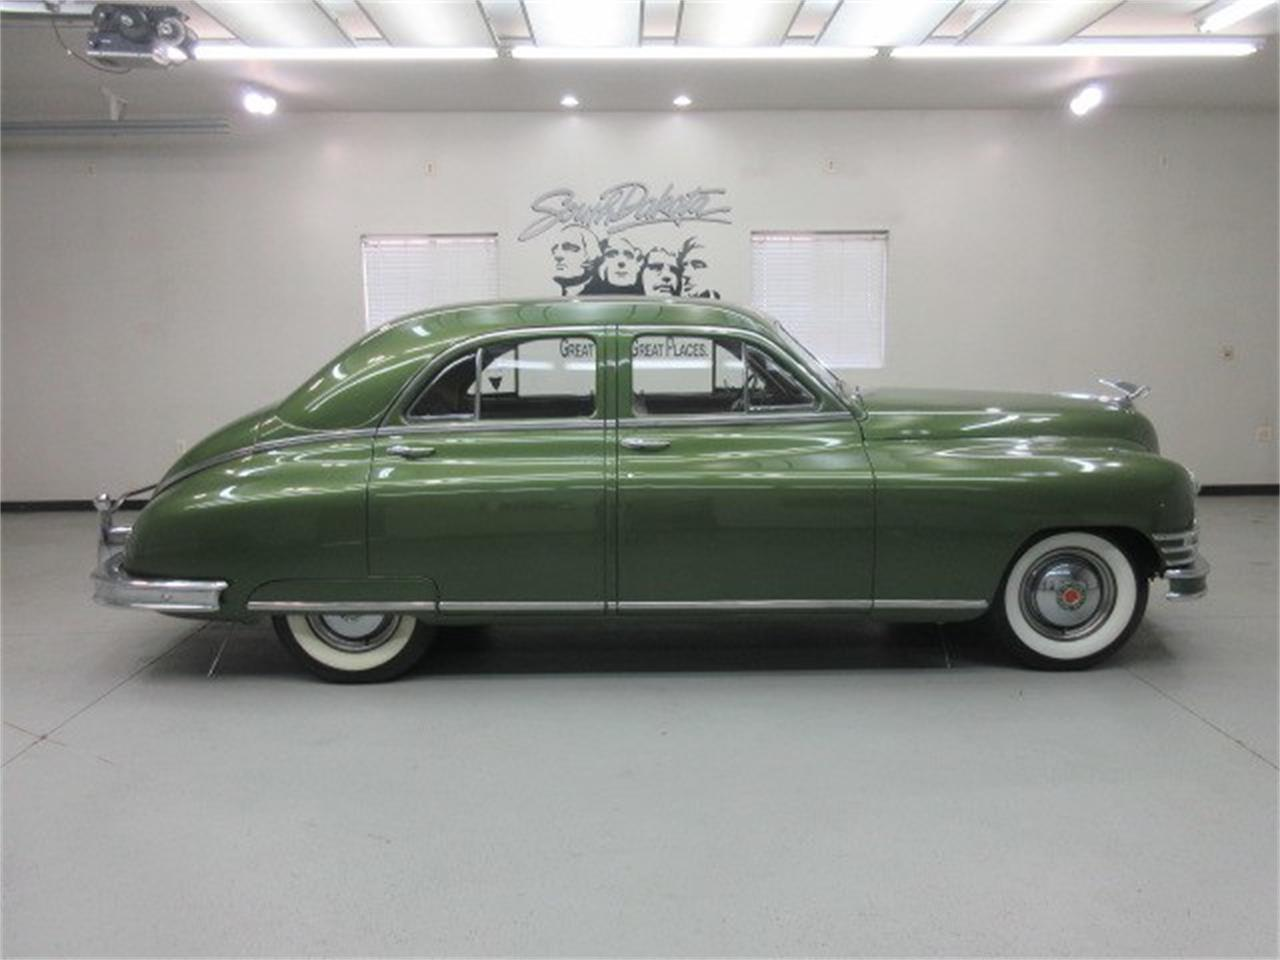 1948 Packard Wiring Diagram Blog 46 Deluxe For Sale Classiccars Com Cc 1031359 Chrysler Windsor